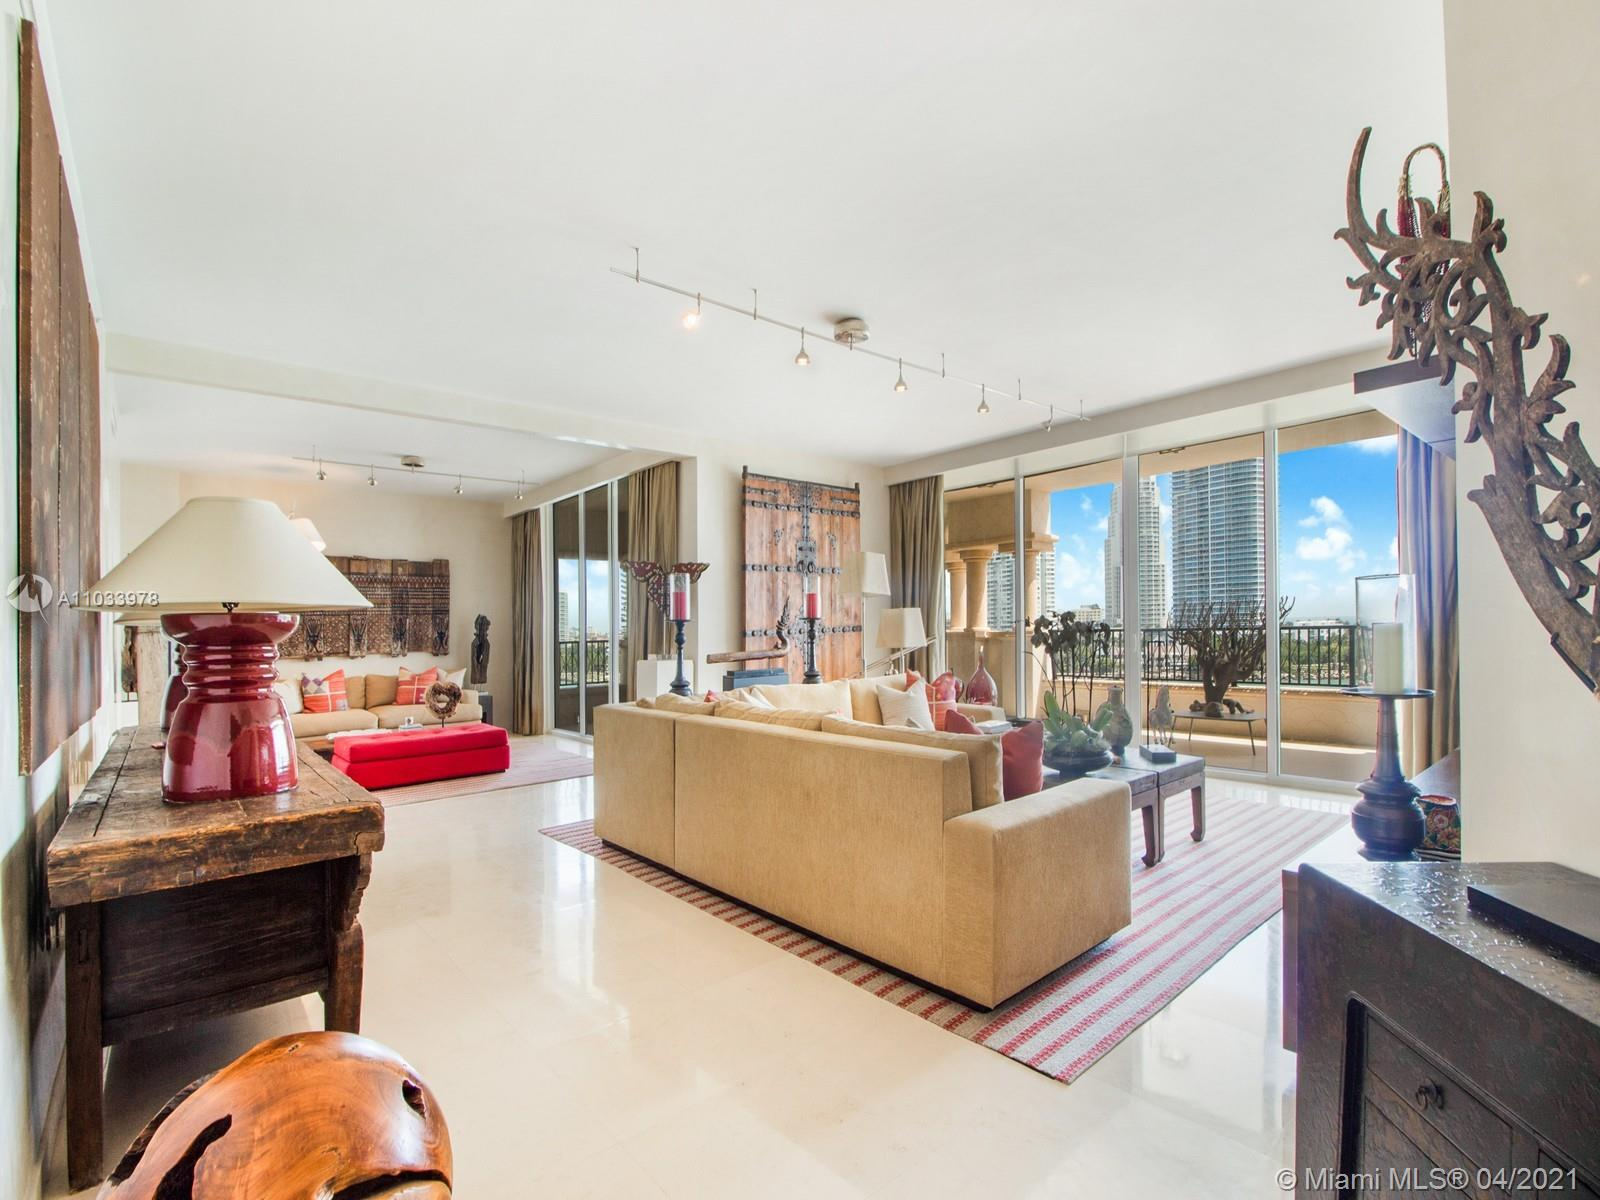 7161 Fisher Island Dr, Unit #7161 Luxury Real Estate